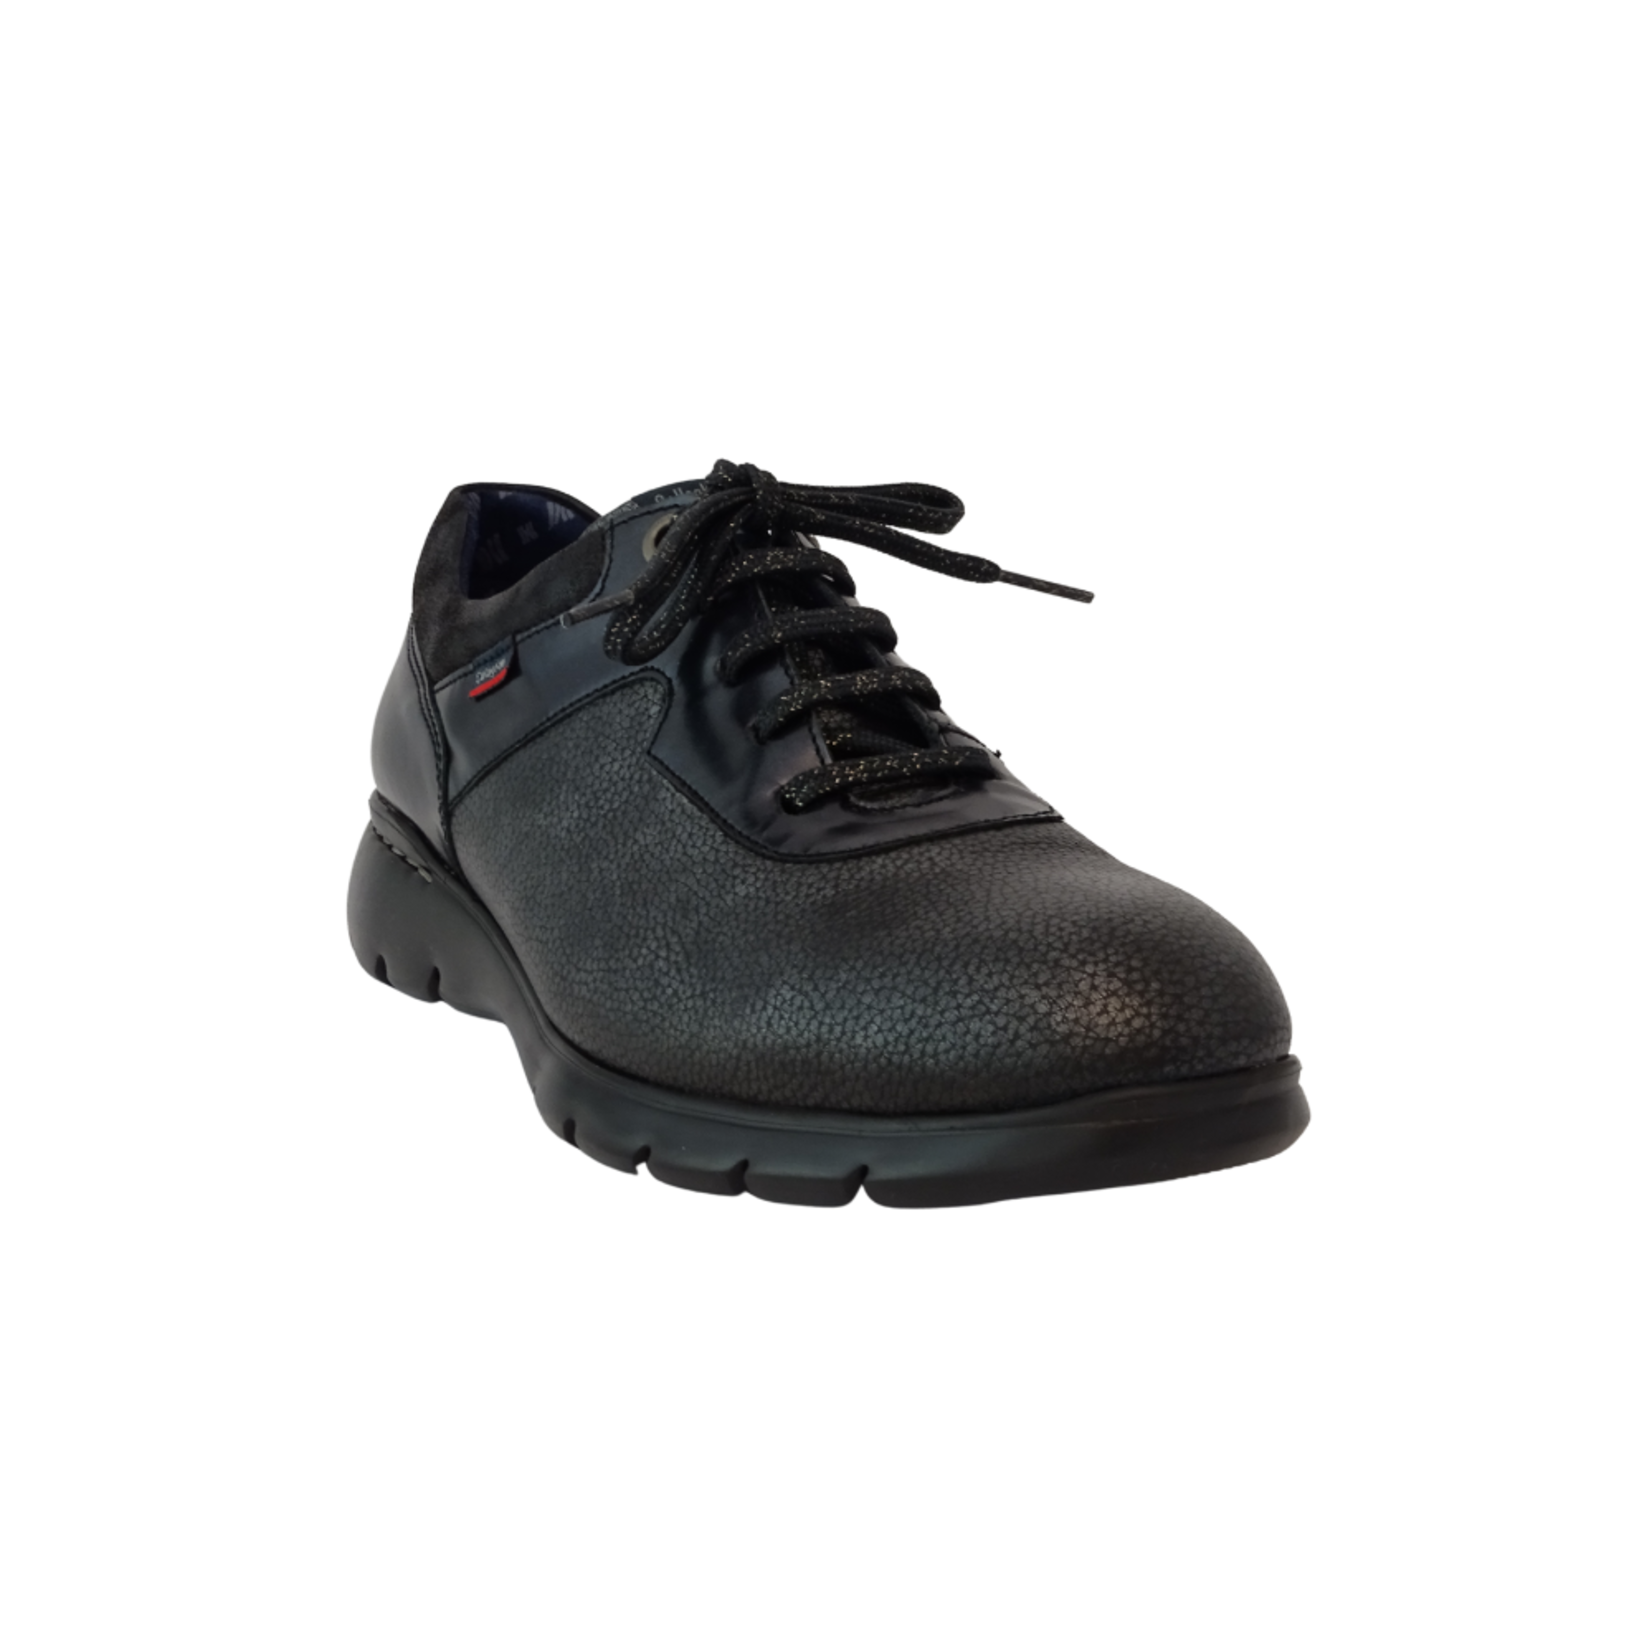 Callaghan 16902 only size 41